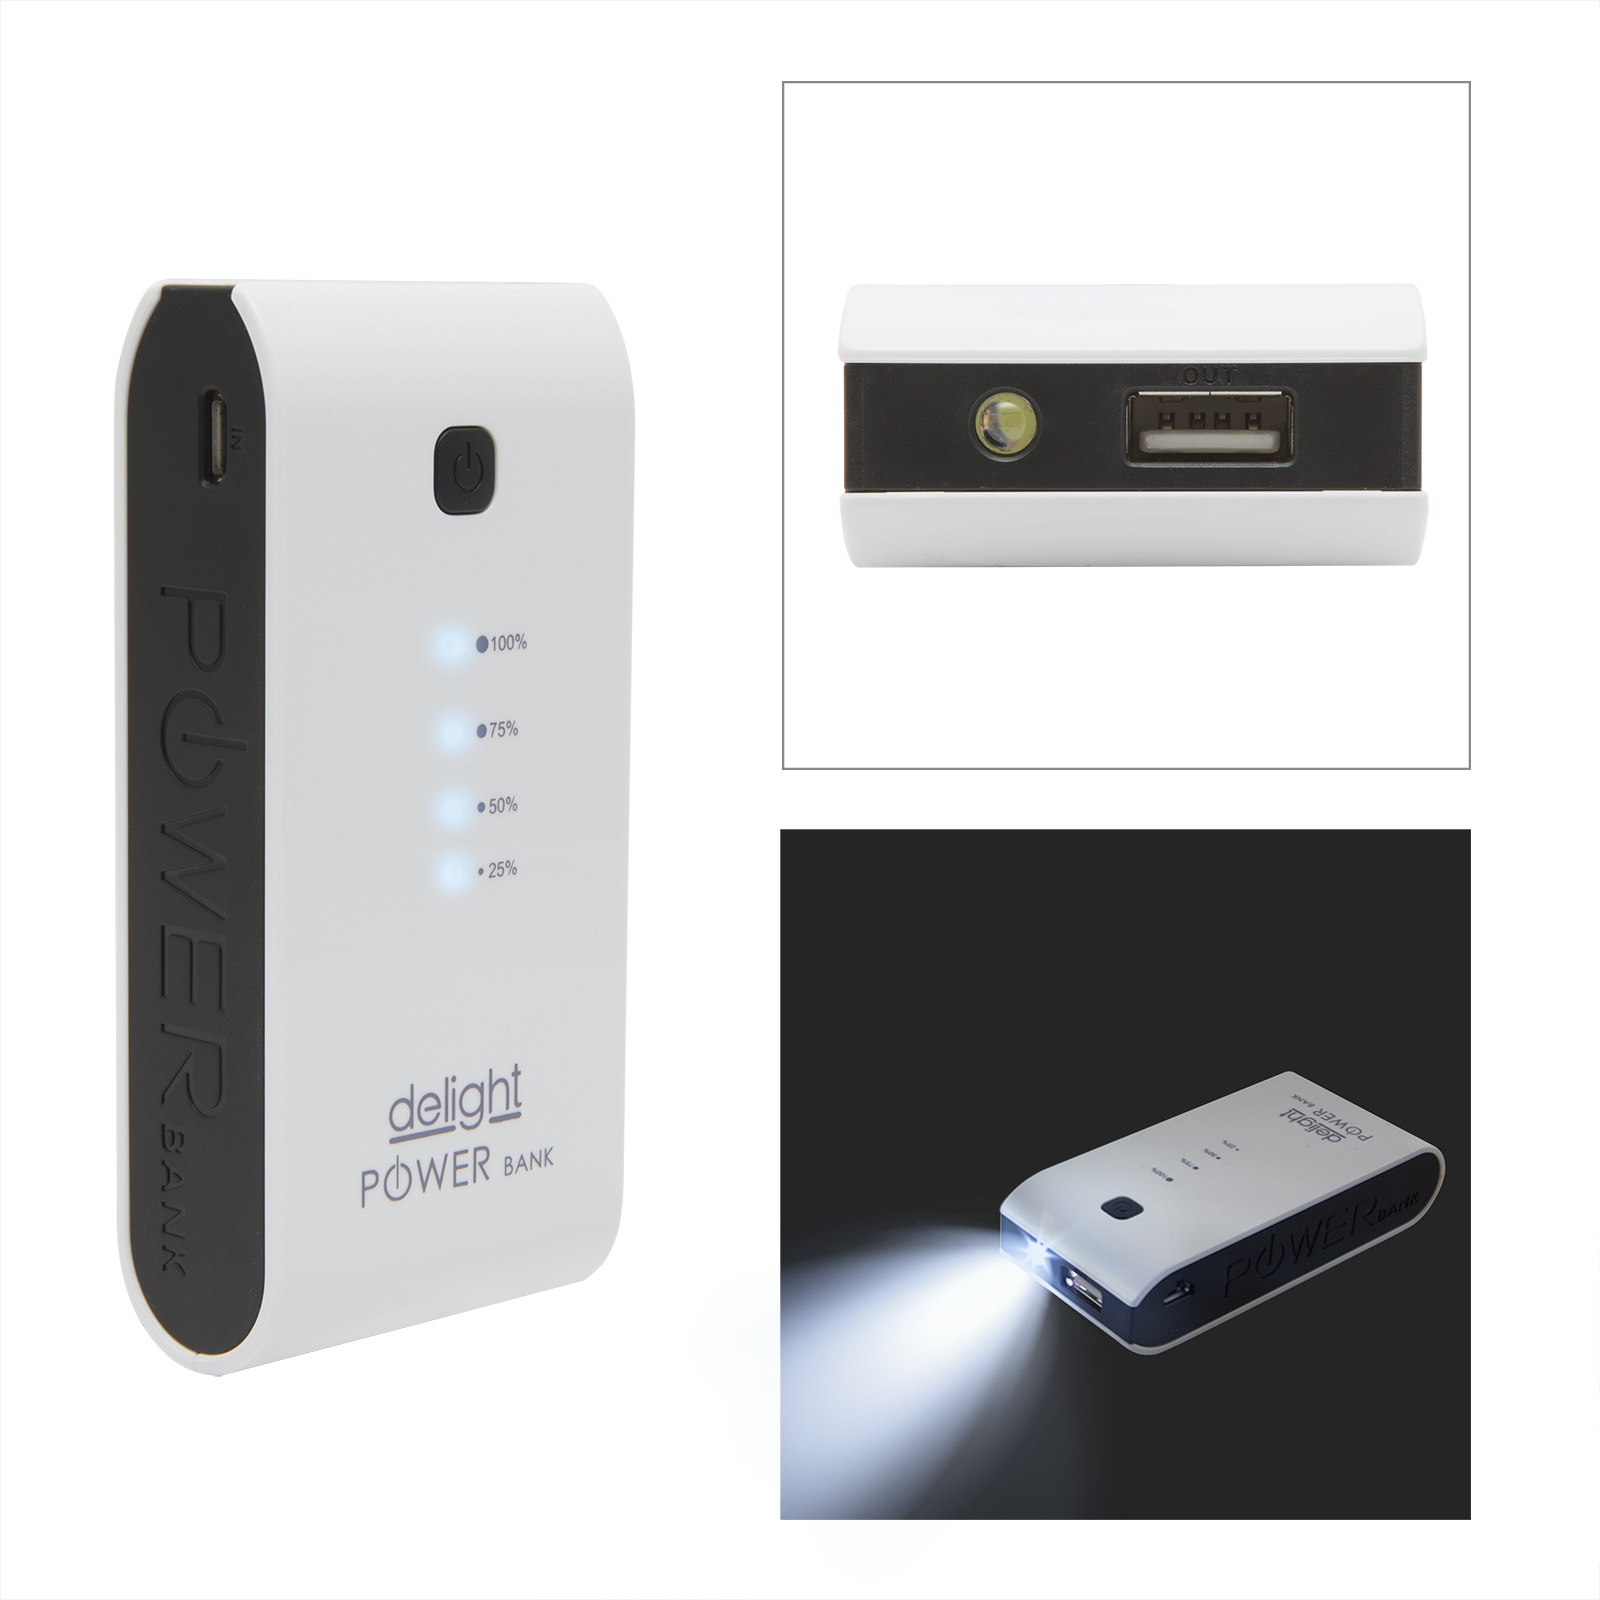 Delight Power Bank 3200mAh